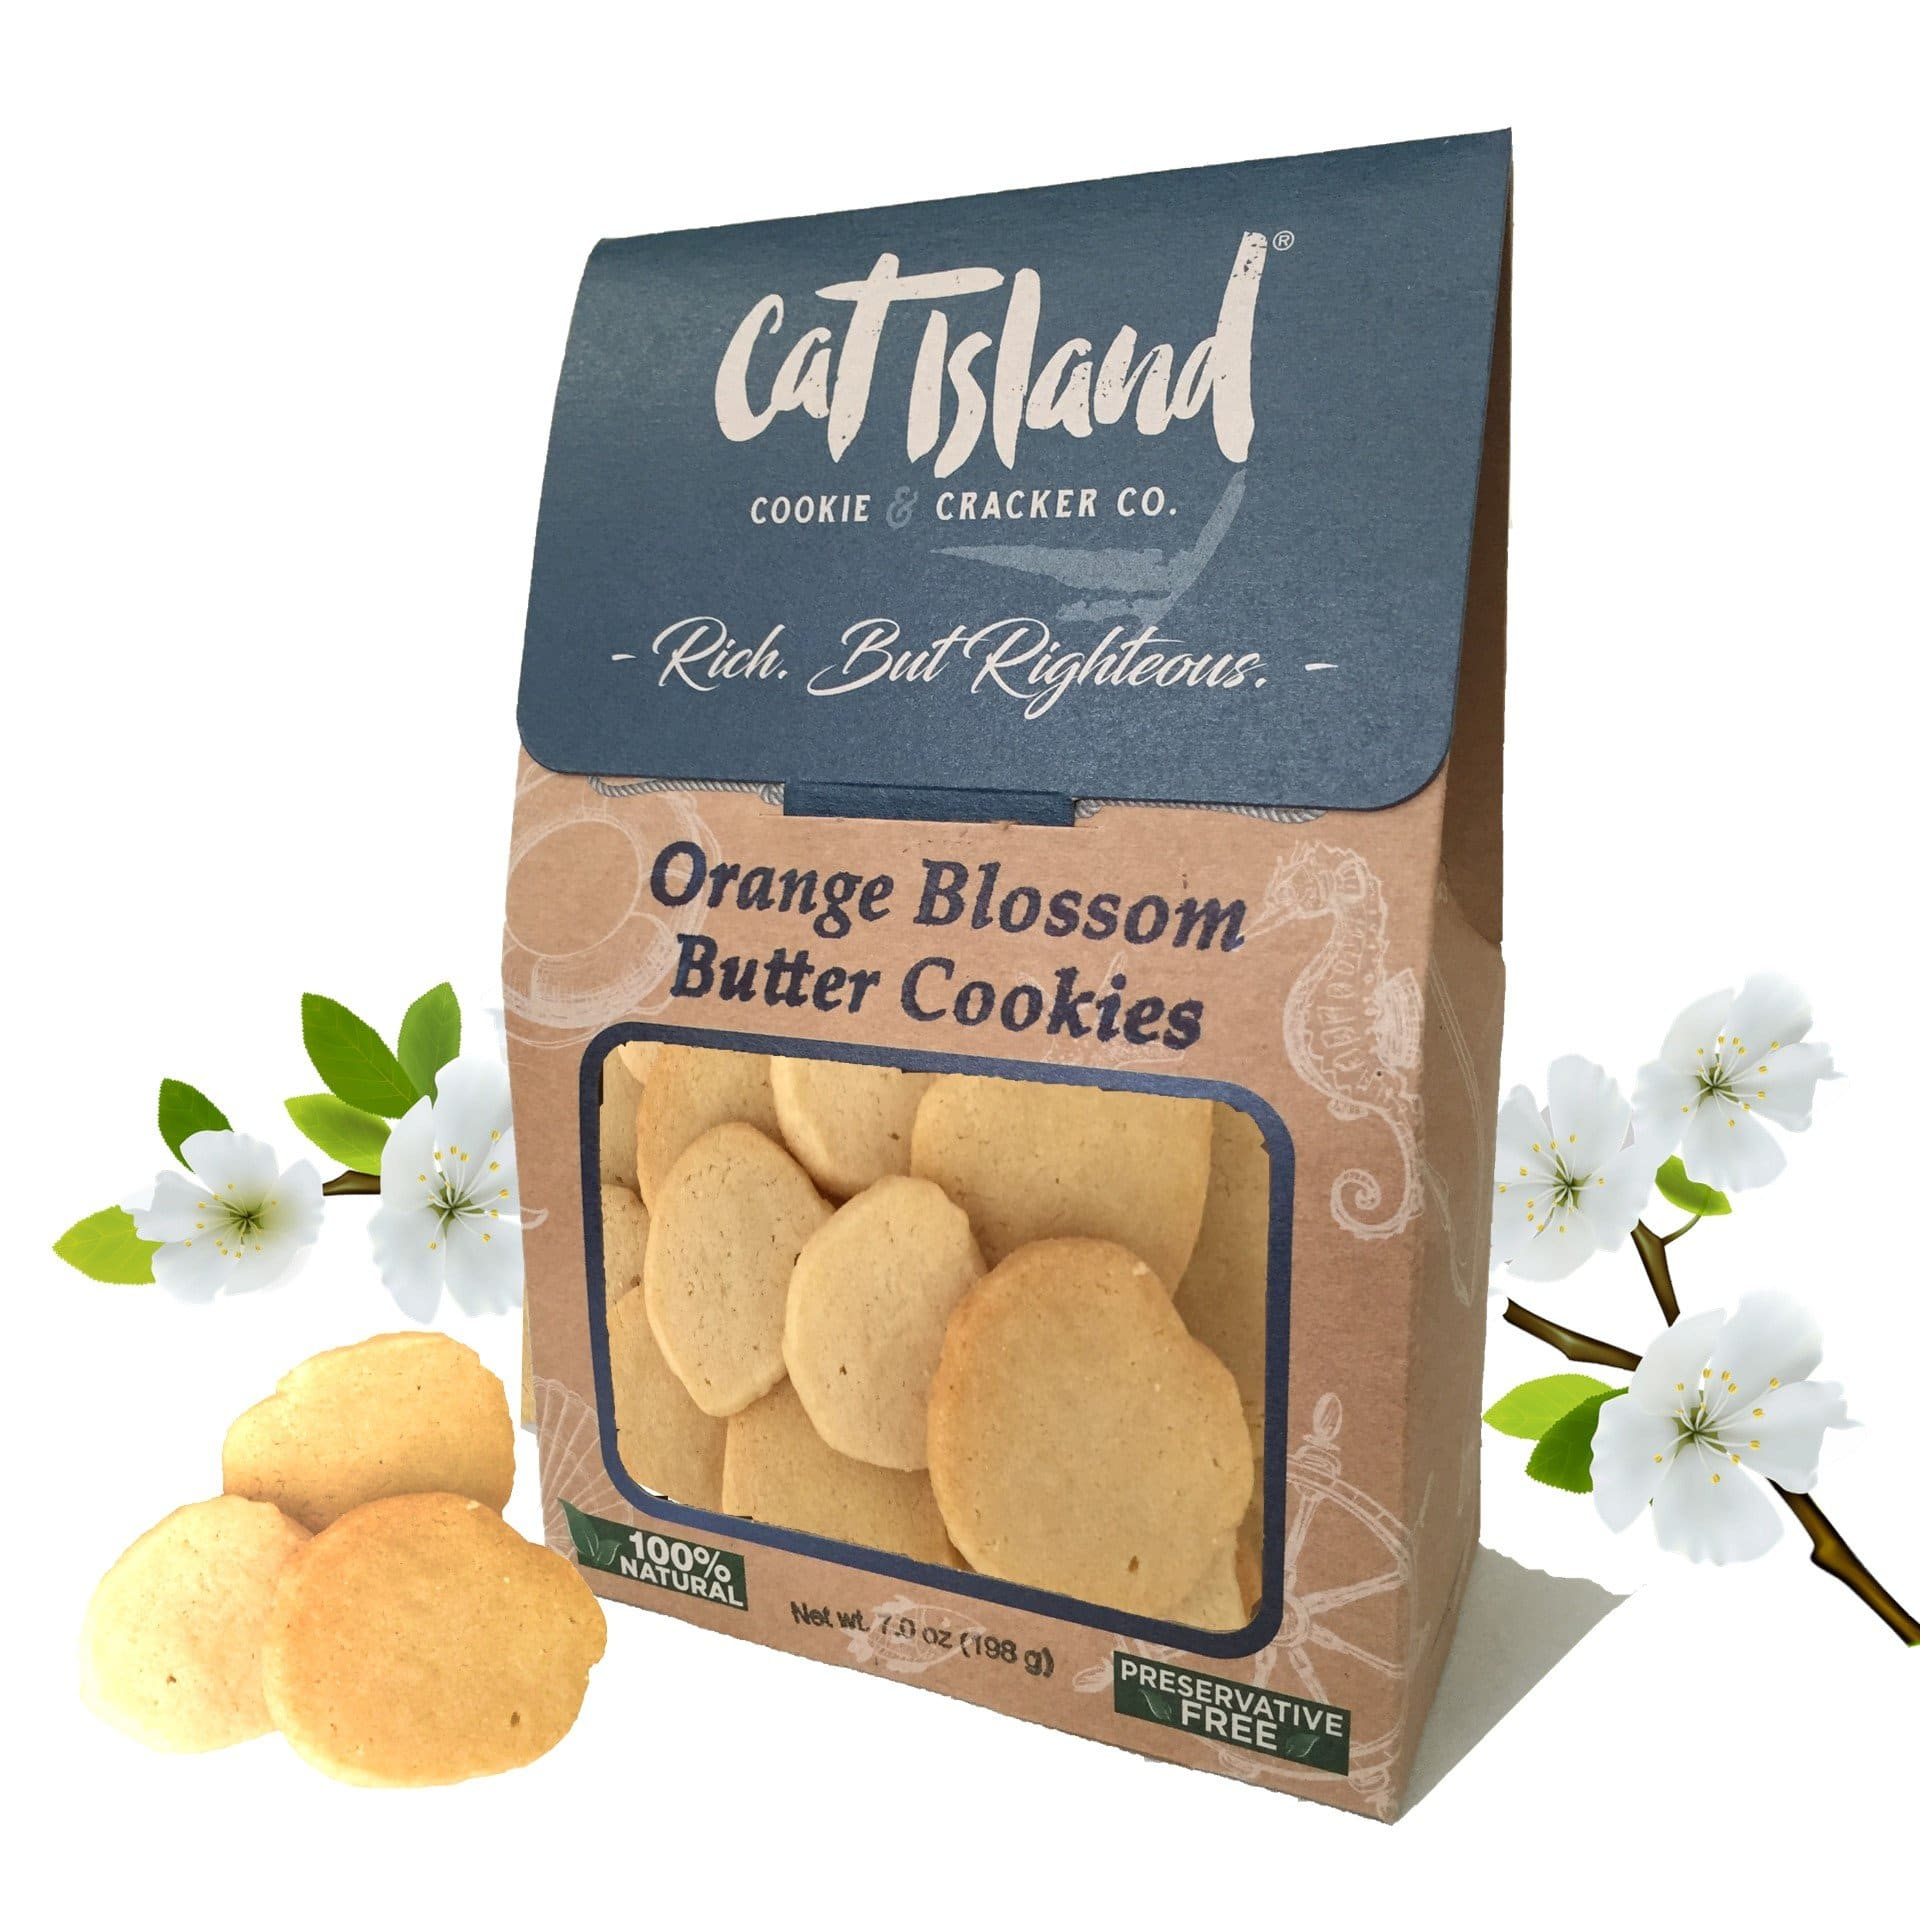 Cat Island Releases Orange Blossom Butter Cookies